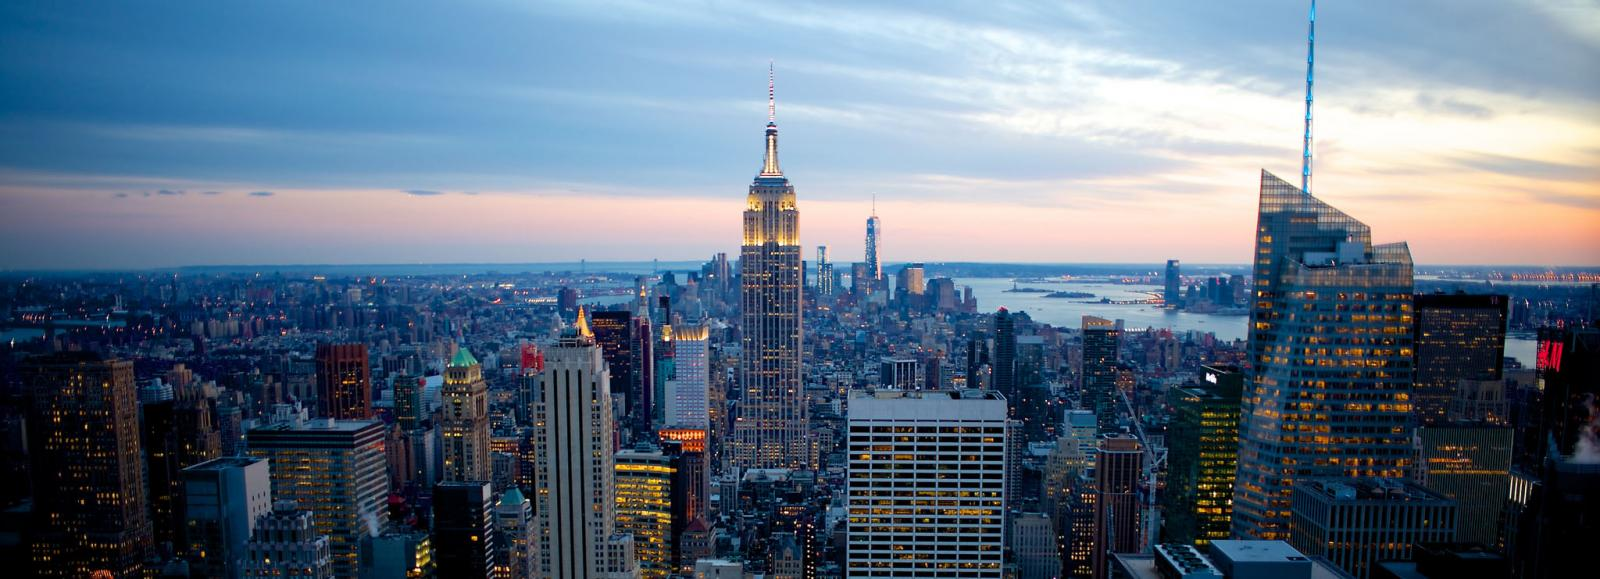 Edificio Empire State Building